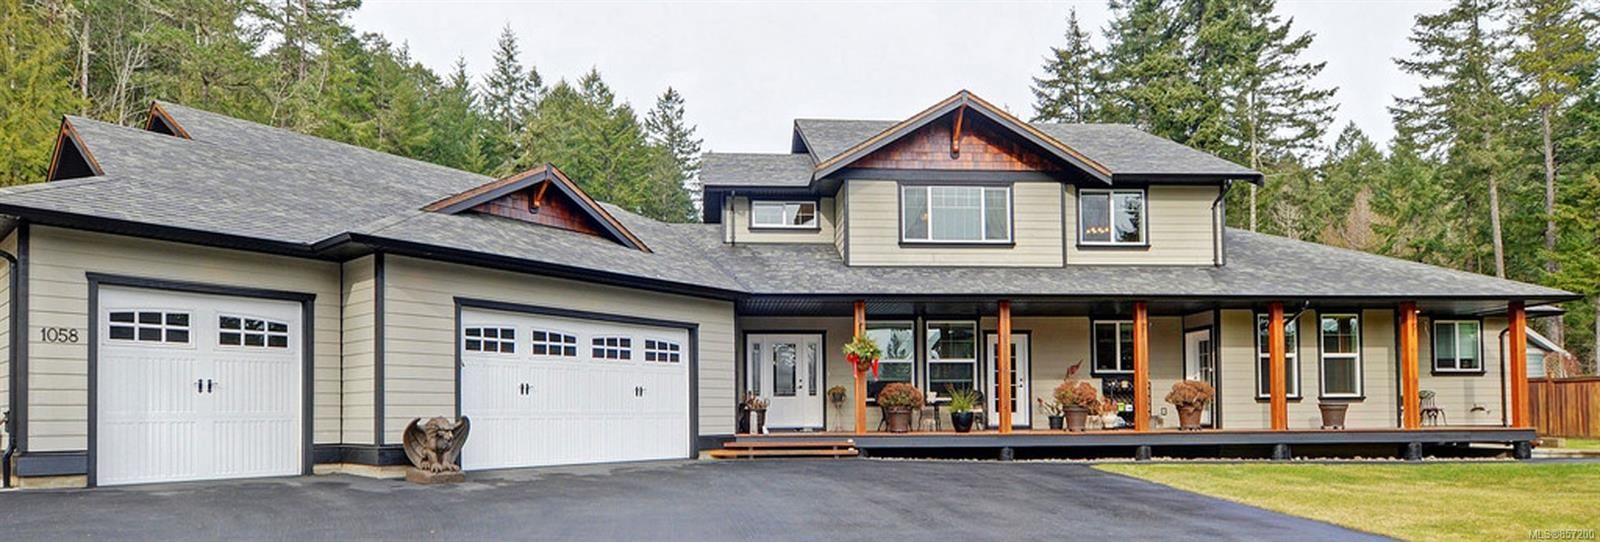 Main Photo: 1058 Summer Breeze Lane in : La Happy Valley House for sale (Langford)  : MLS®# 857200